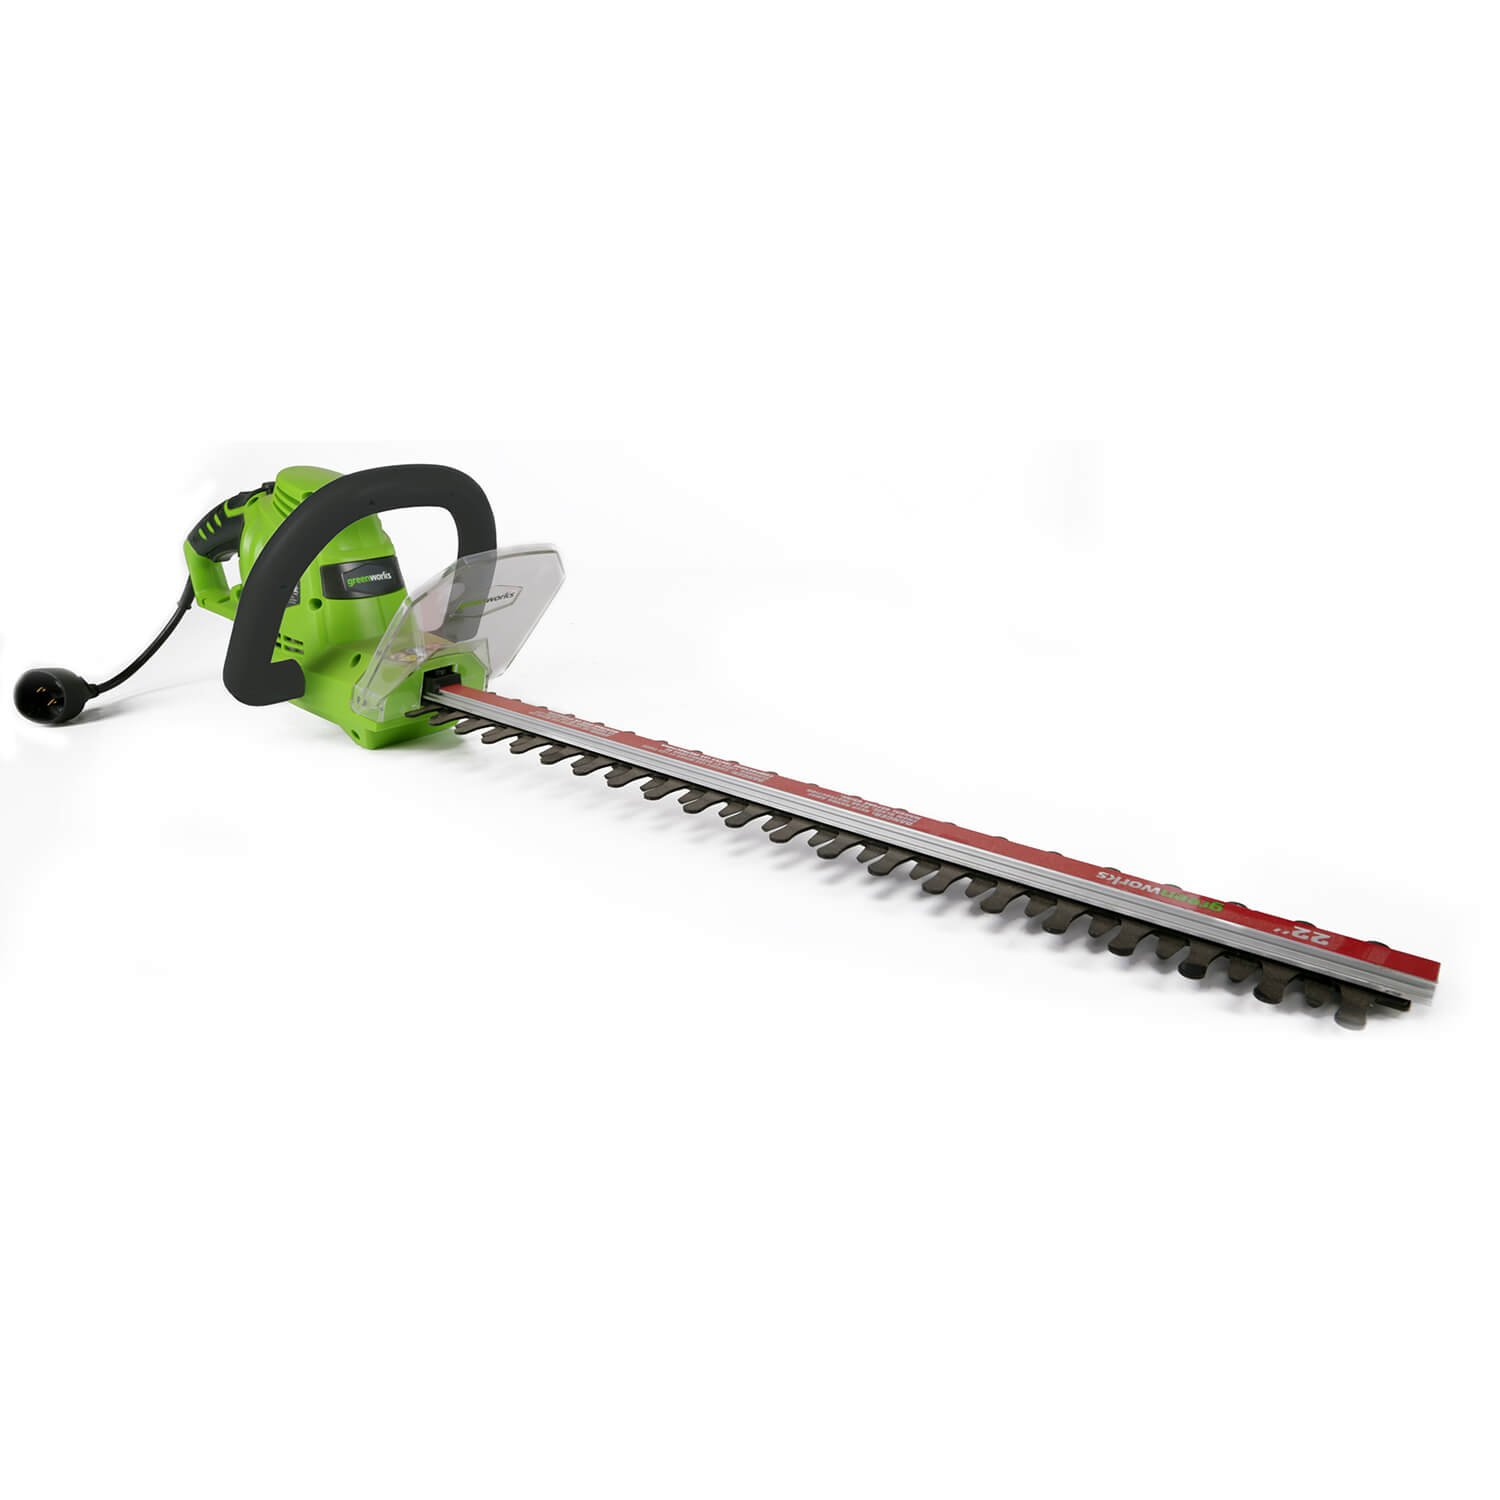 Greenworks 22-Inch 4 Amp Dual-Action Corded Hedge Trimmer 22122